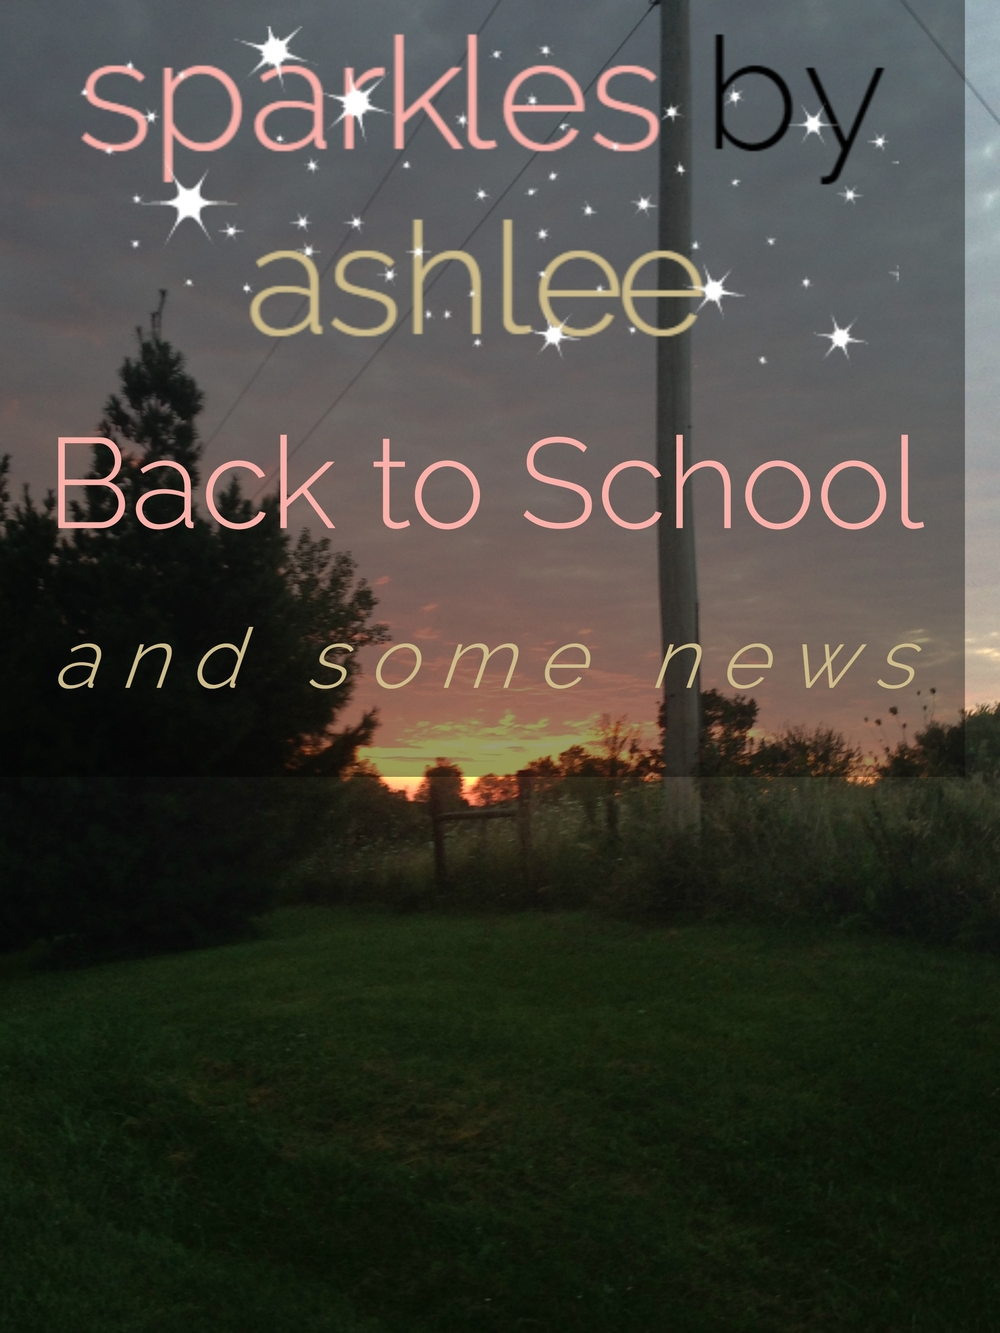 Back-to-School-Sparkles-by-Ashlee.jpg